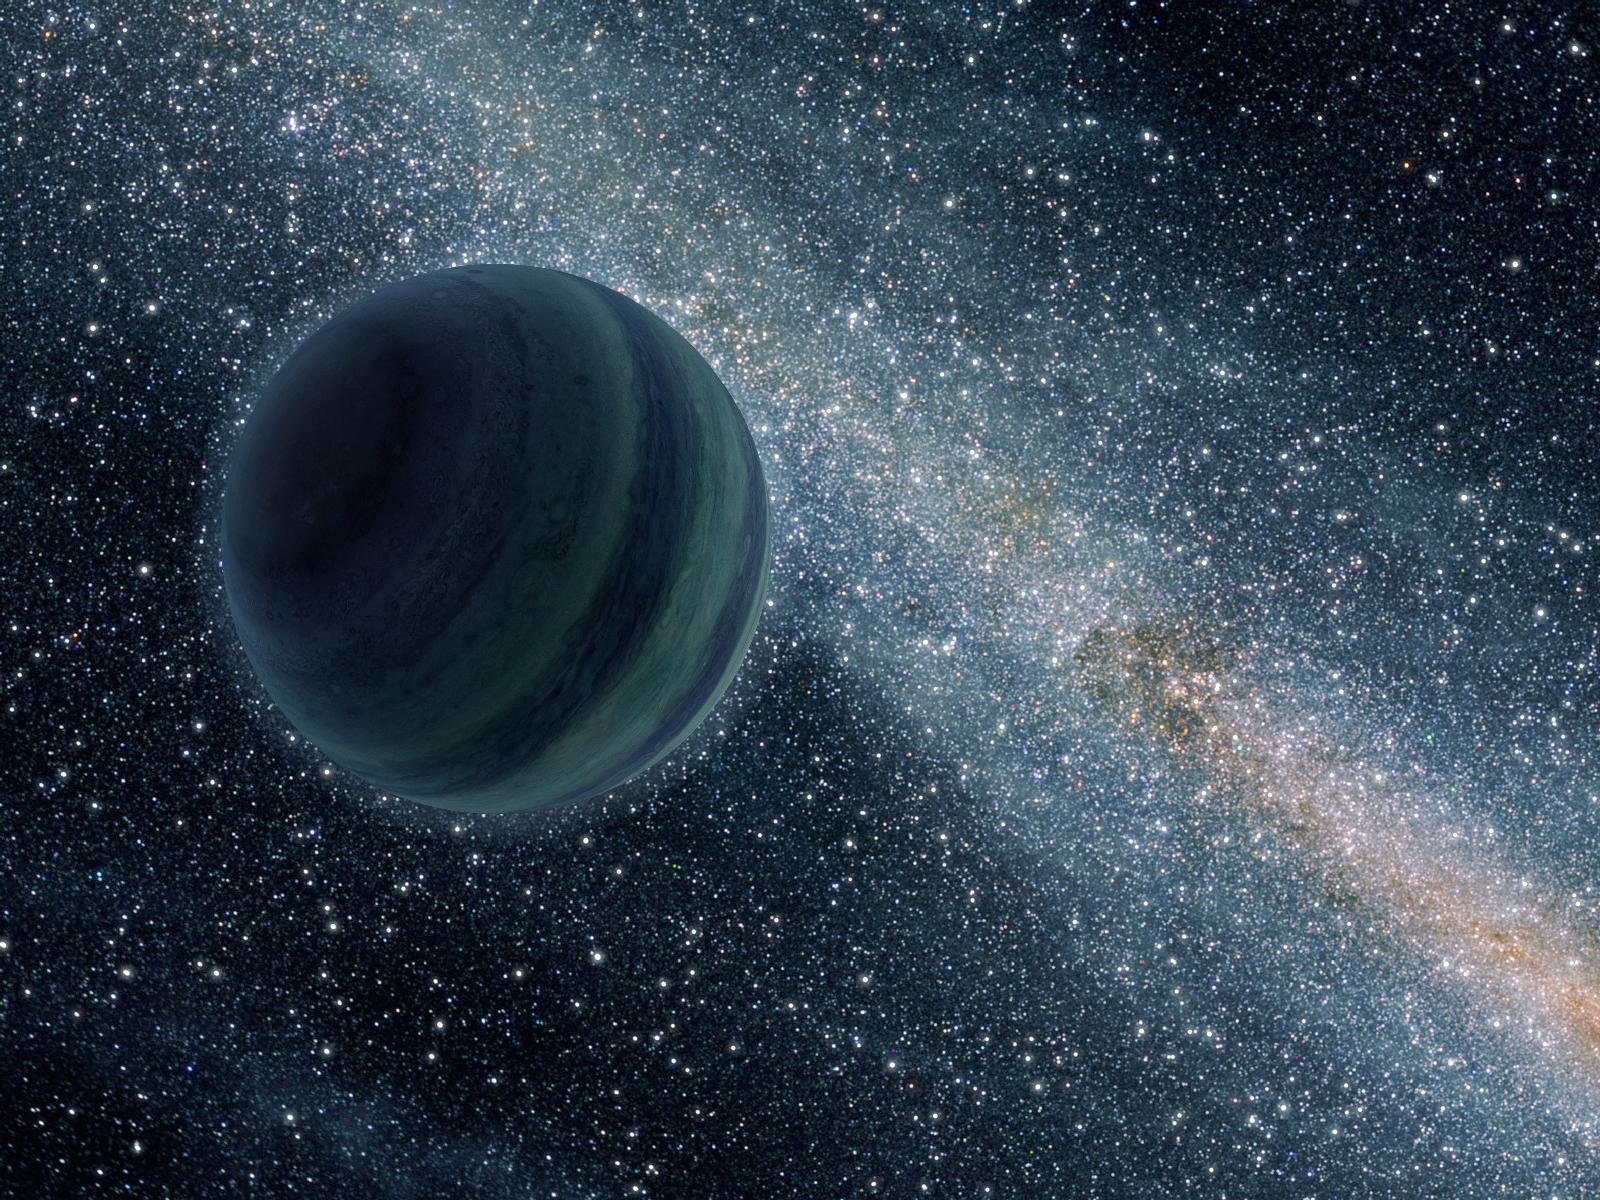 Jupiter-Like Planets Can Send Mars-Size Worlds Packing